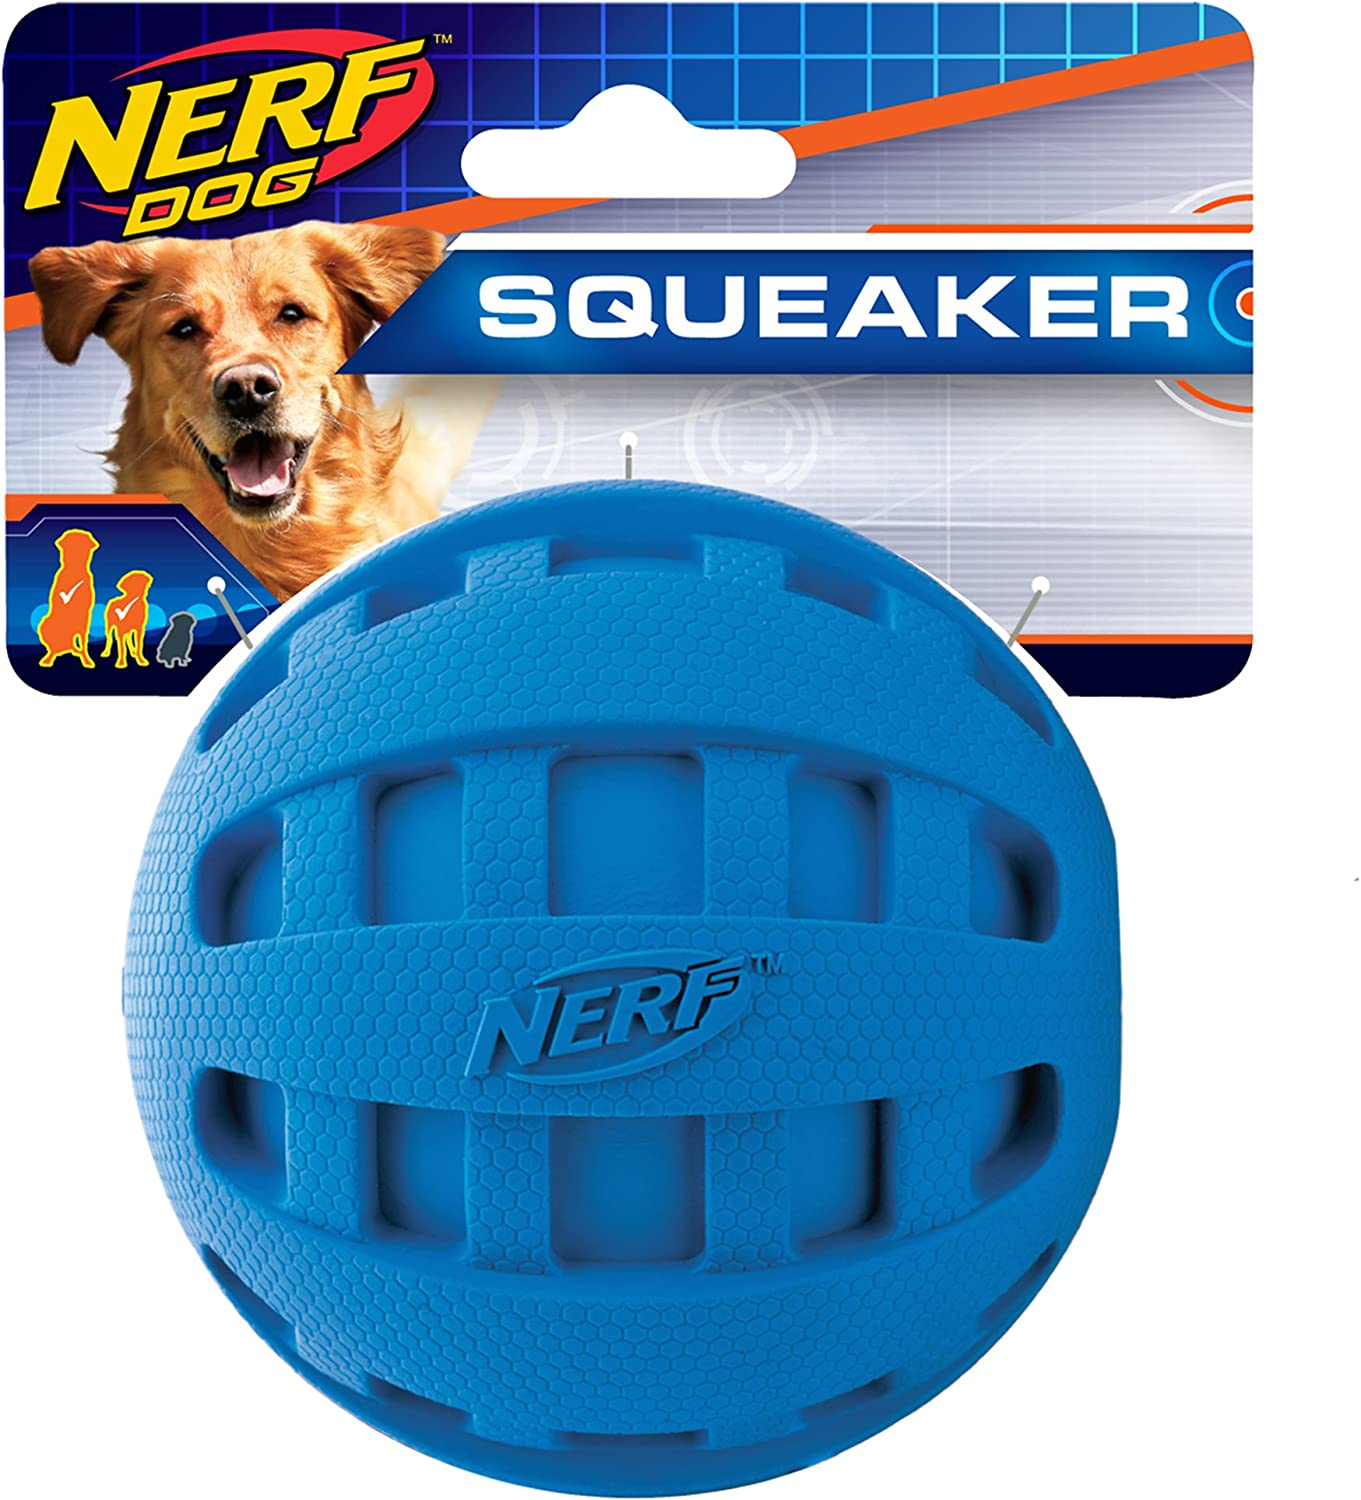 Nerf Colorado Springs Mall Dog Checker Ball Toys Water and Durable Great interest R Lightweight